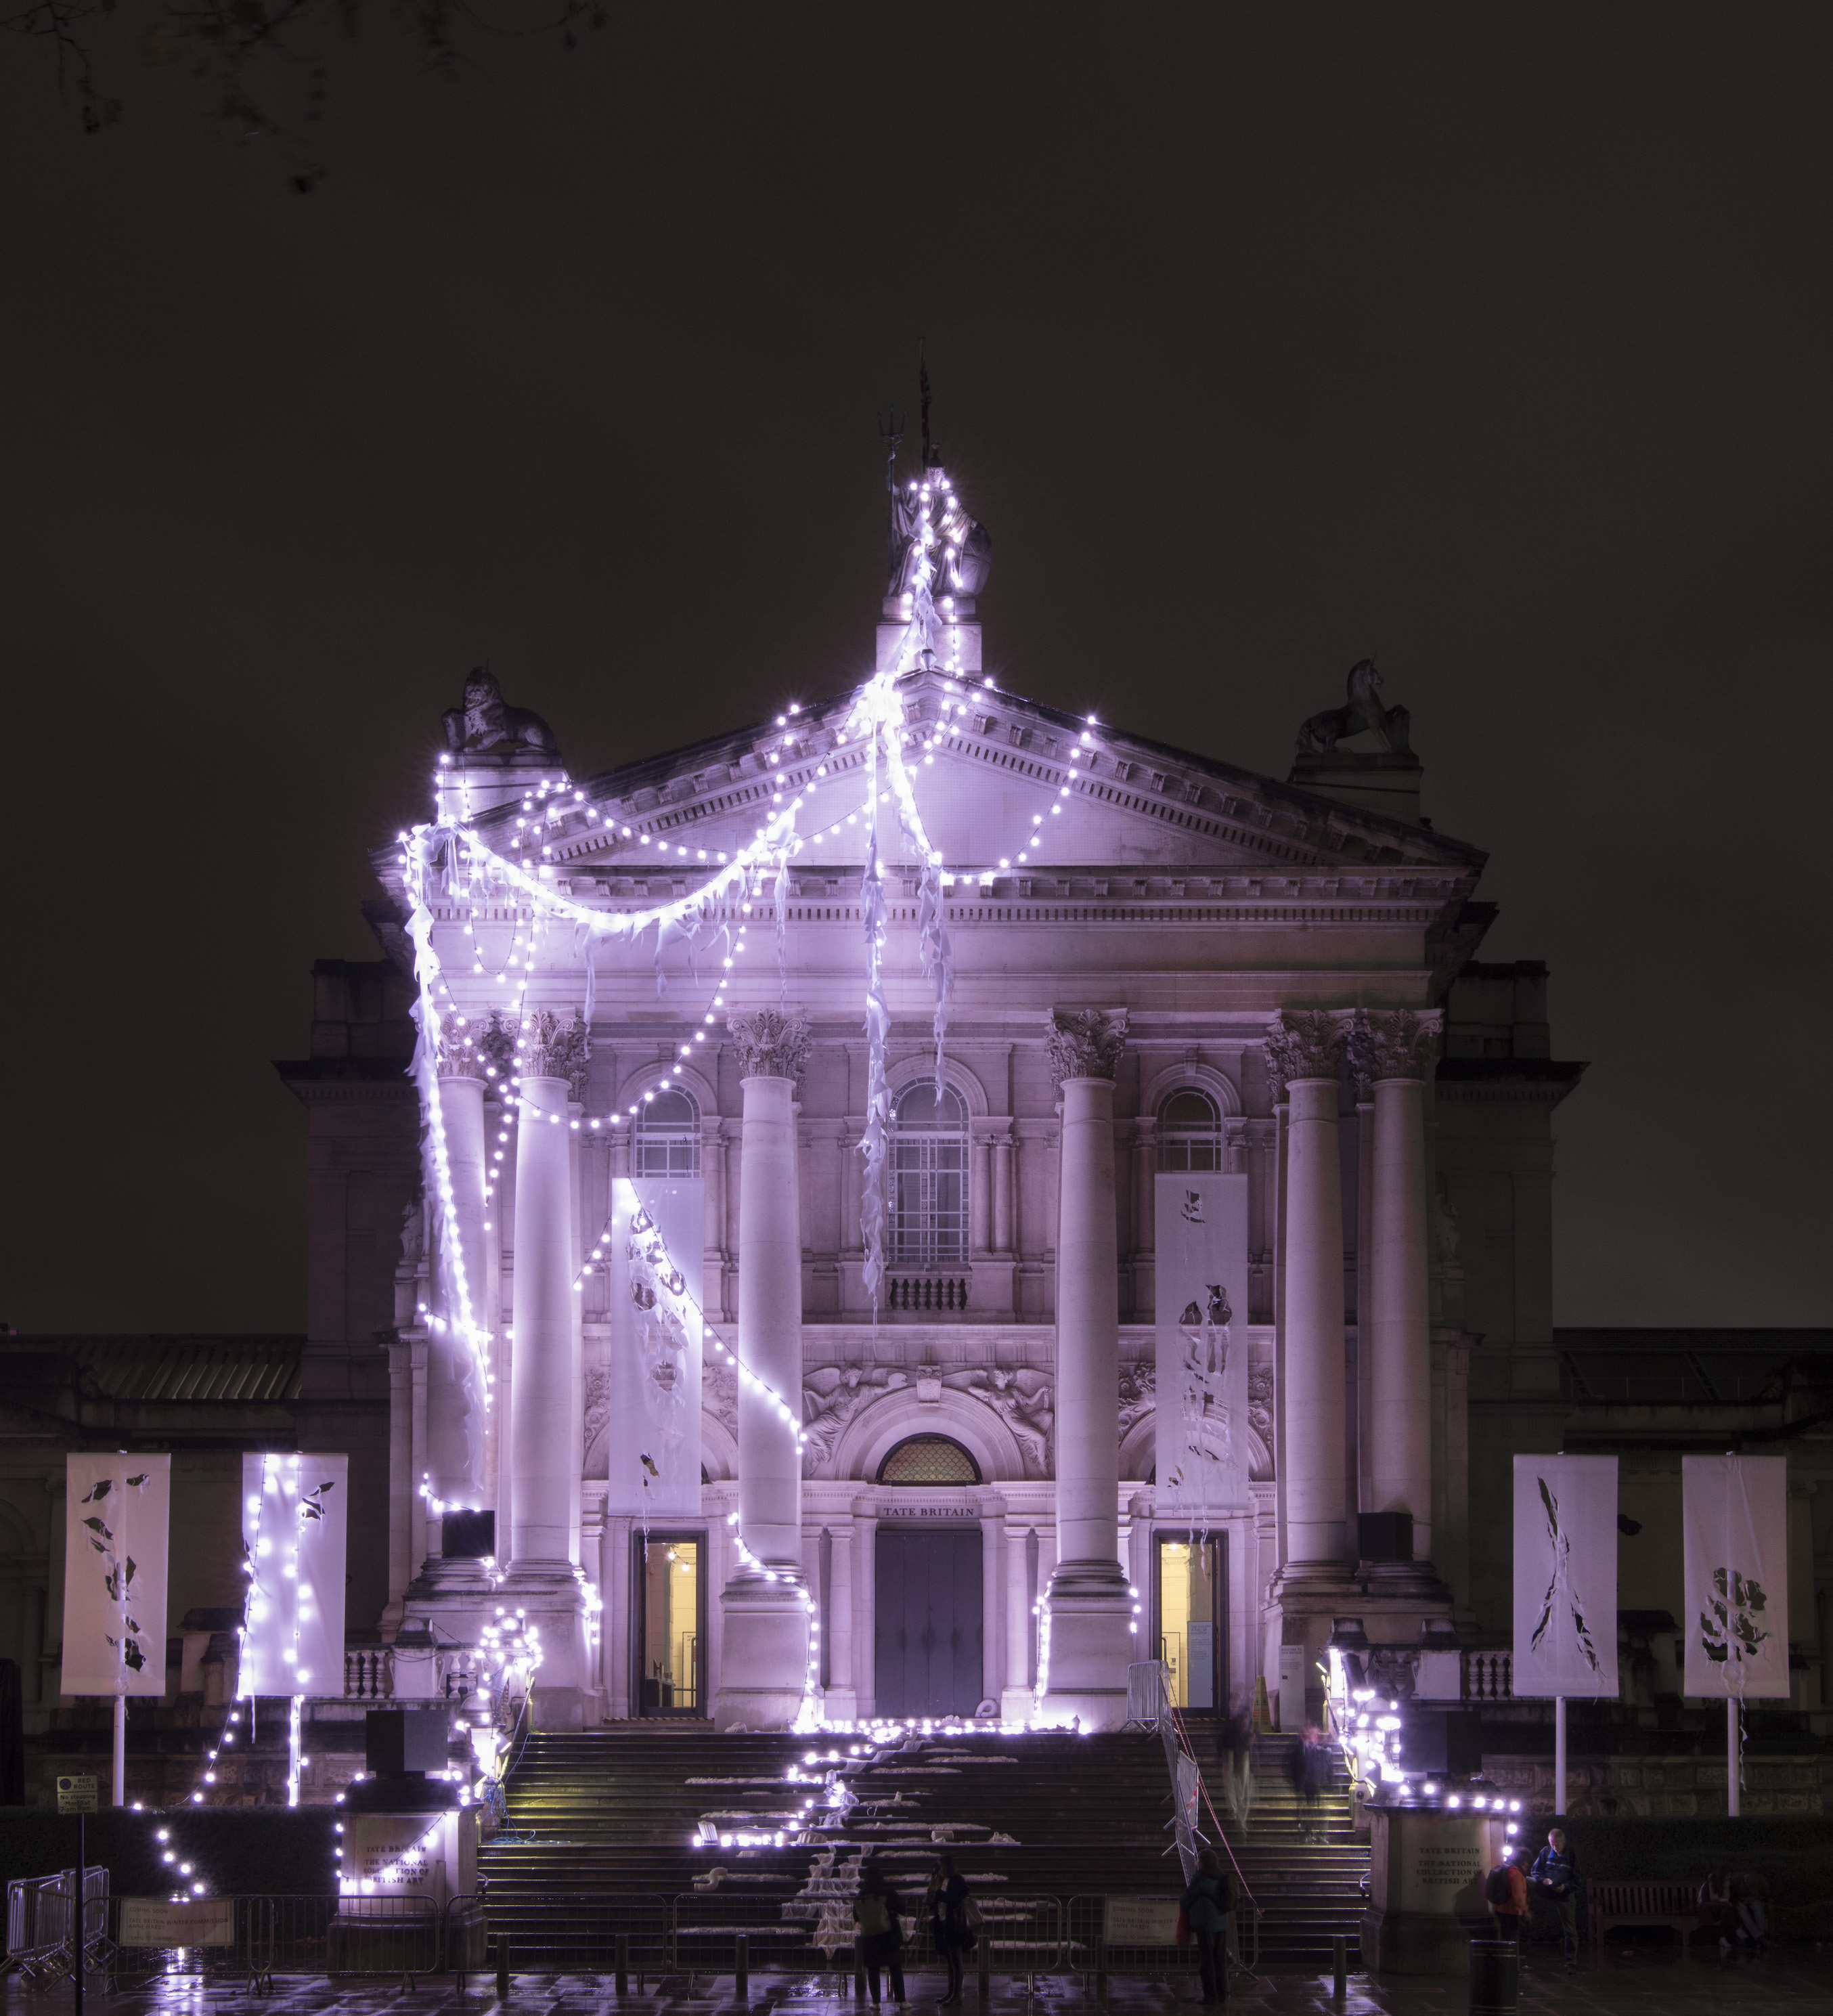 Tate Britain becomes its own Christmas tree